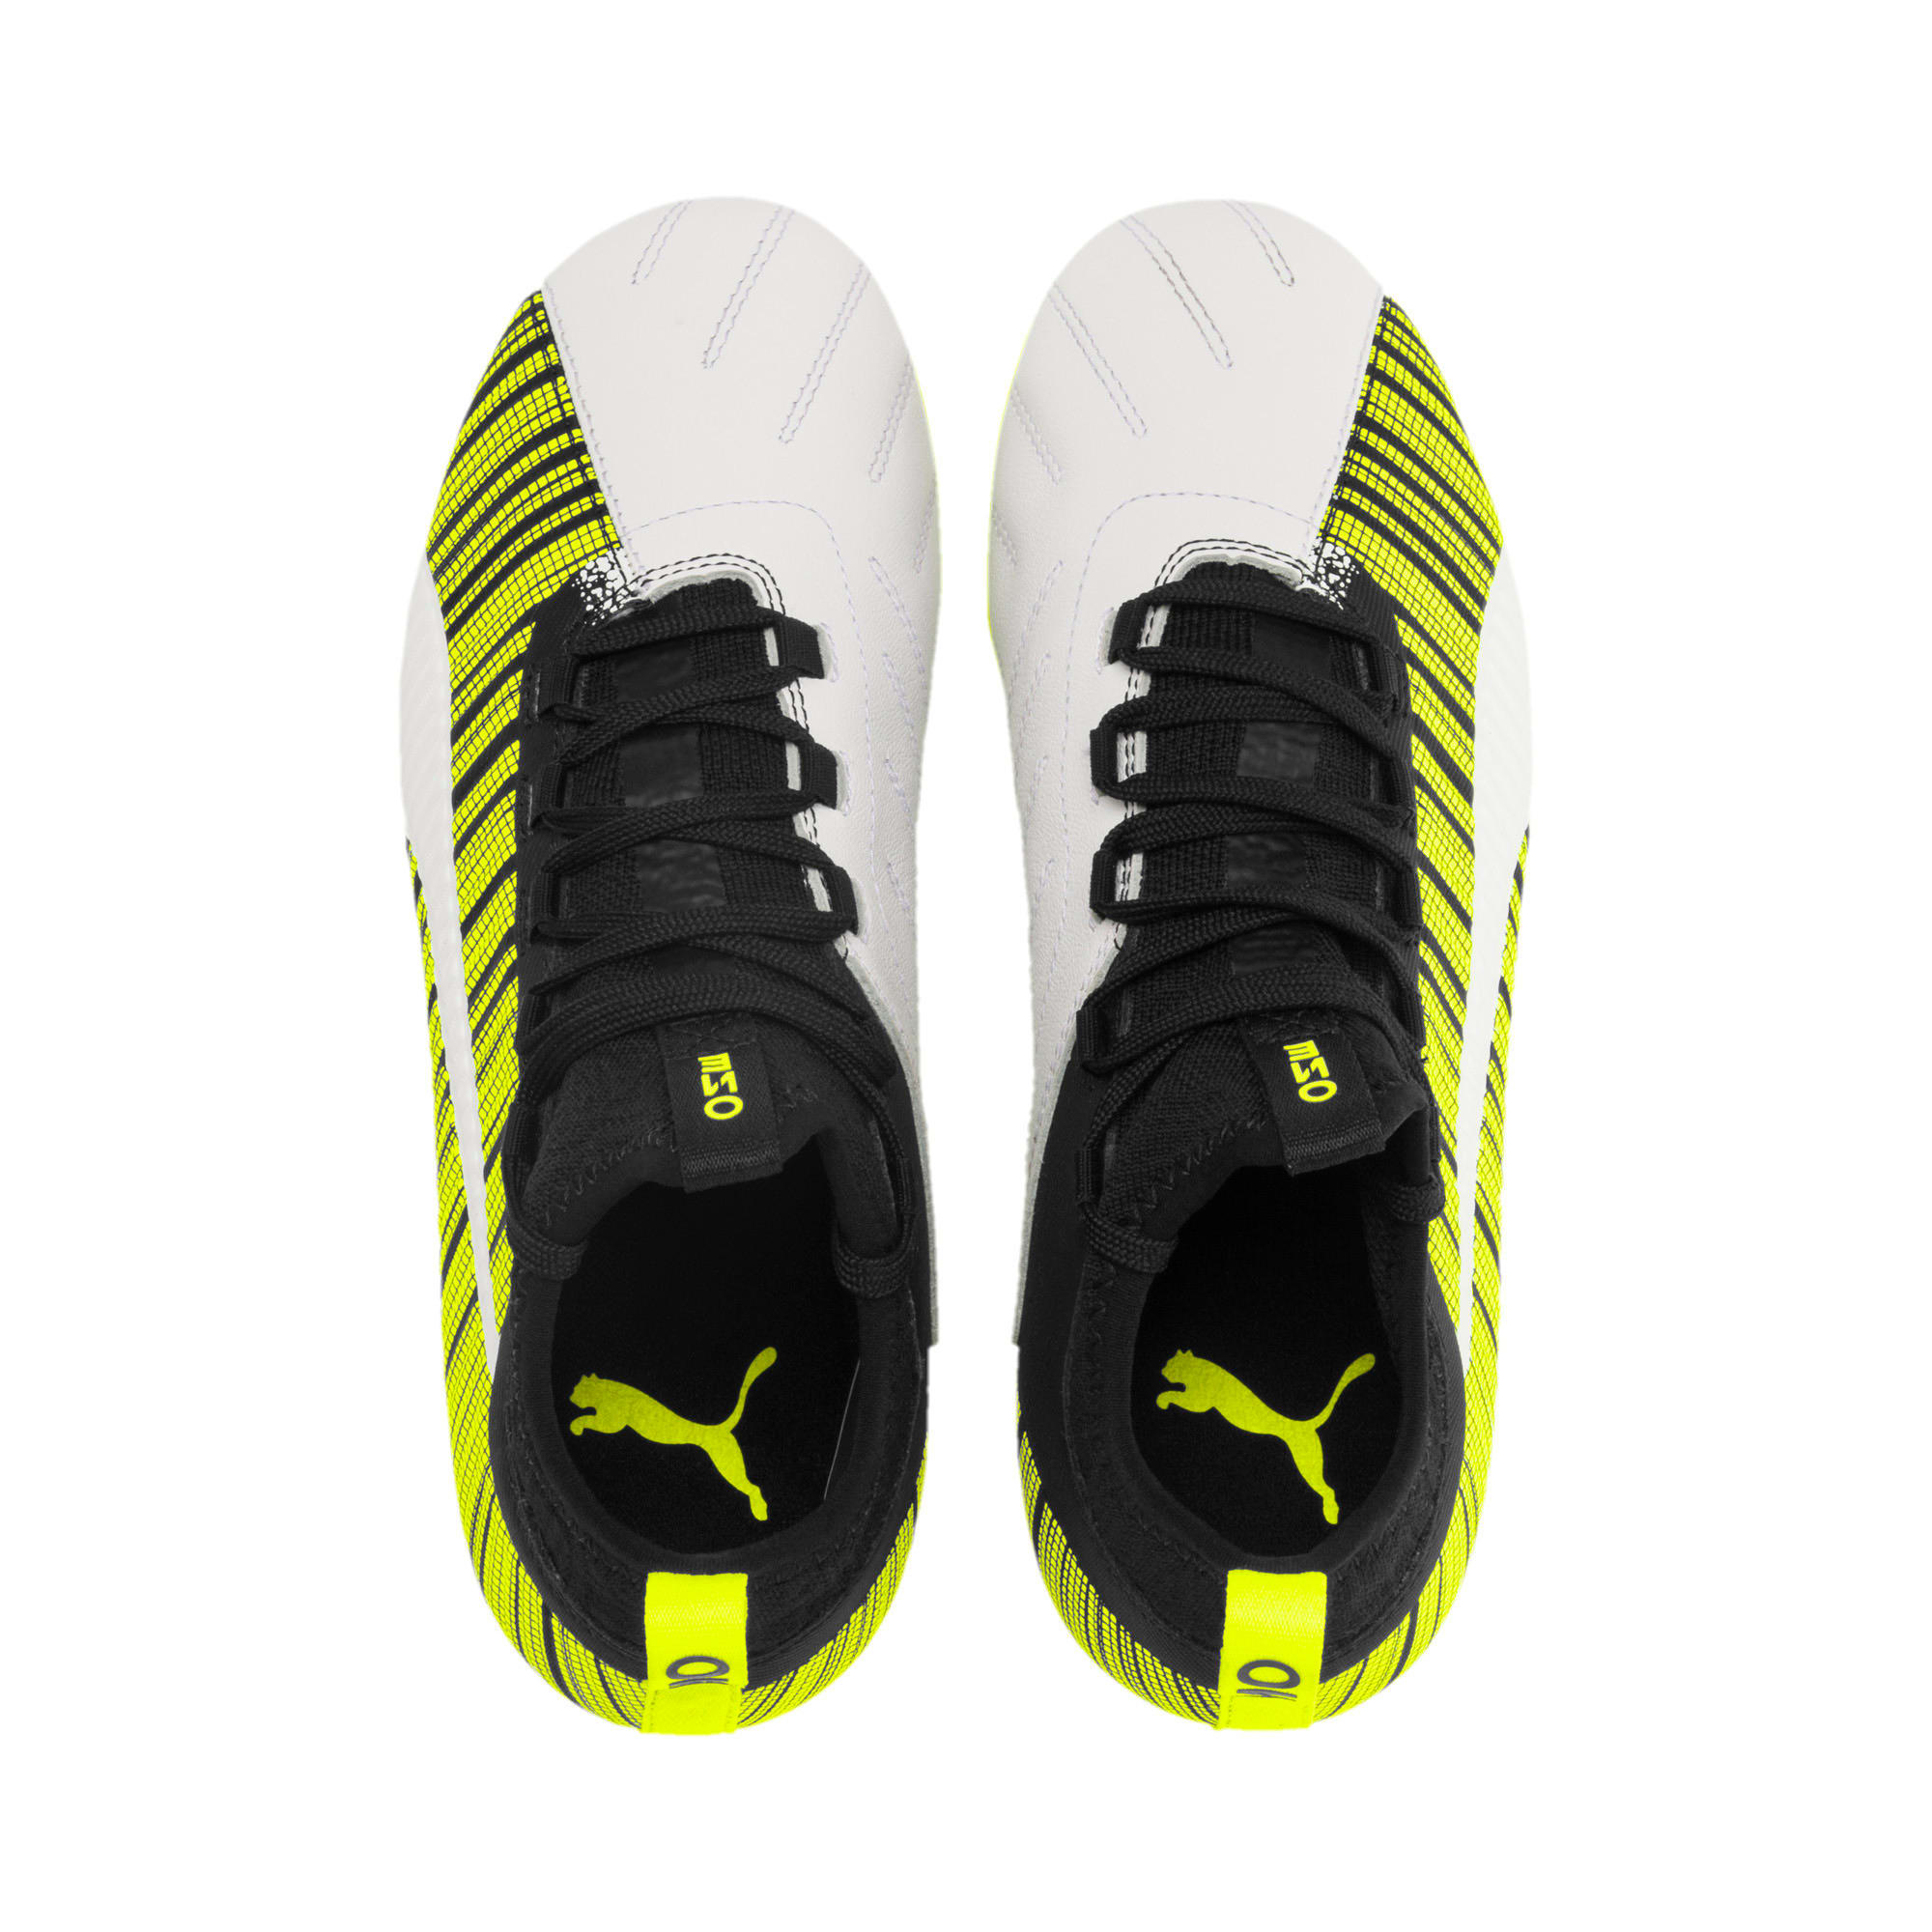 Thumbnail 6 of PUMA ONE 5.3 FG/AG Youth Fußballschuhe, White-Black-Yellow Alert, medium